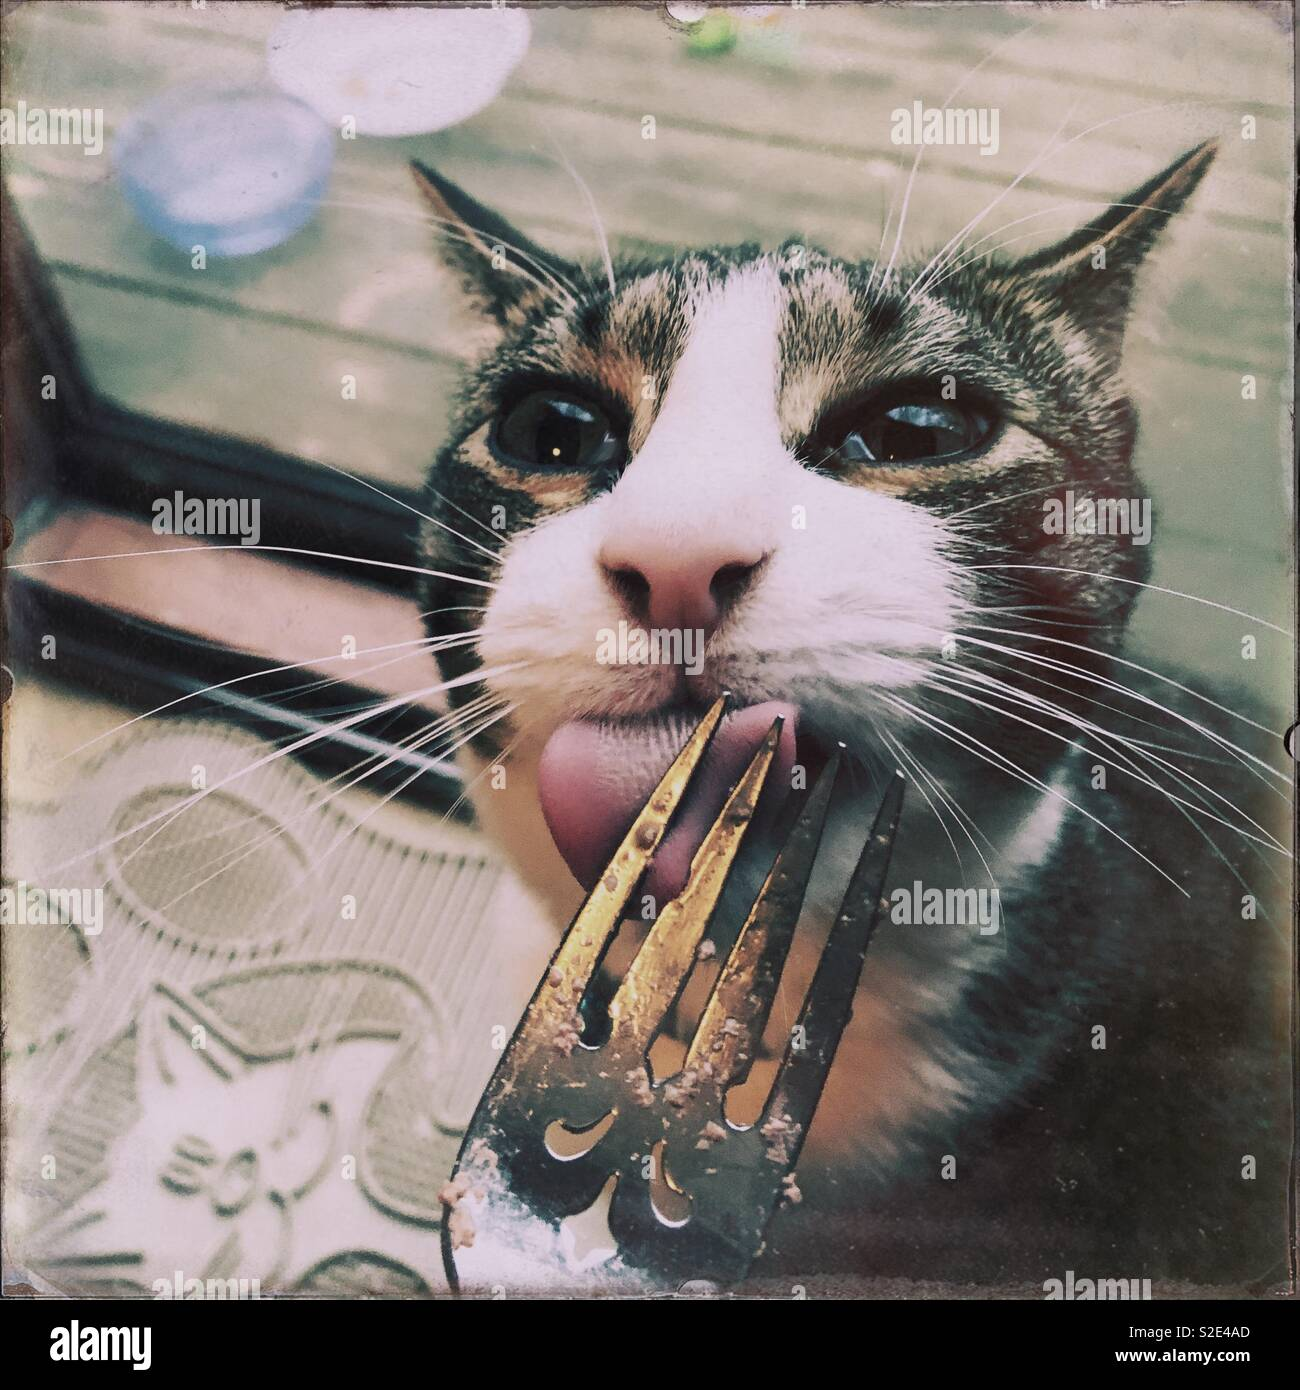 Tabby & white family cat licking his fork clean - Stock Image